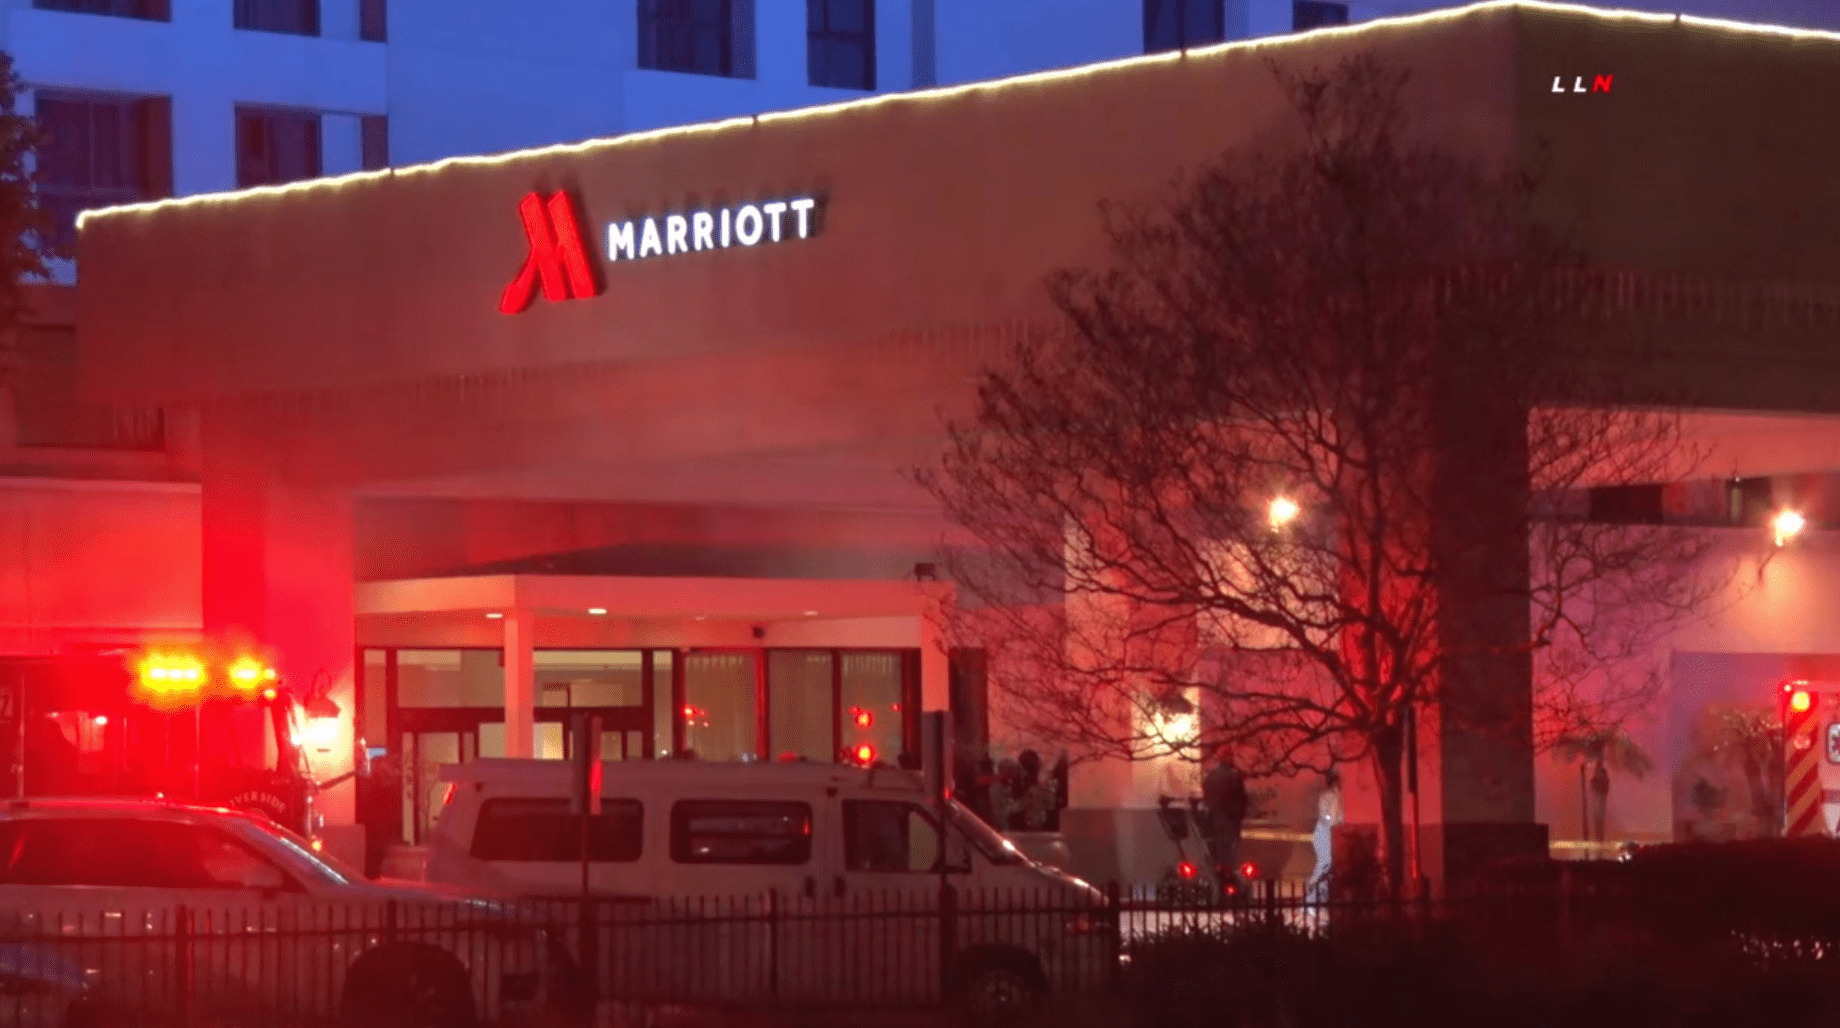 An ambulance is seen outside the the Marriott Riverside at the Convention Center, where a deadly shooting occurred on Feb. 14, 2020. (Credit: Loudlabs)